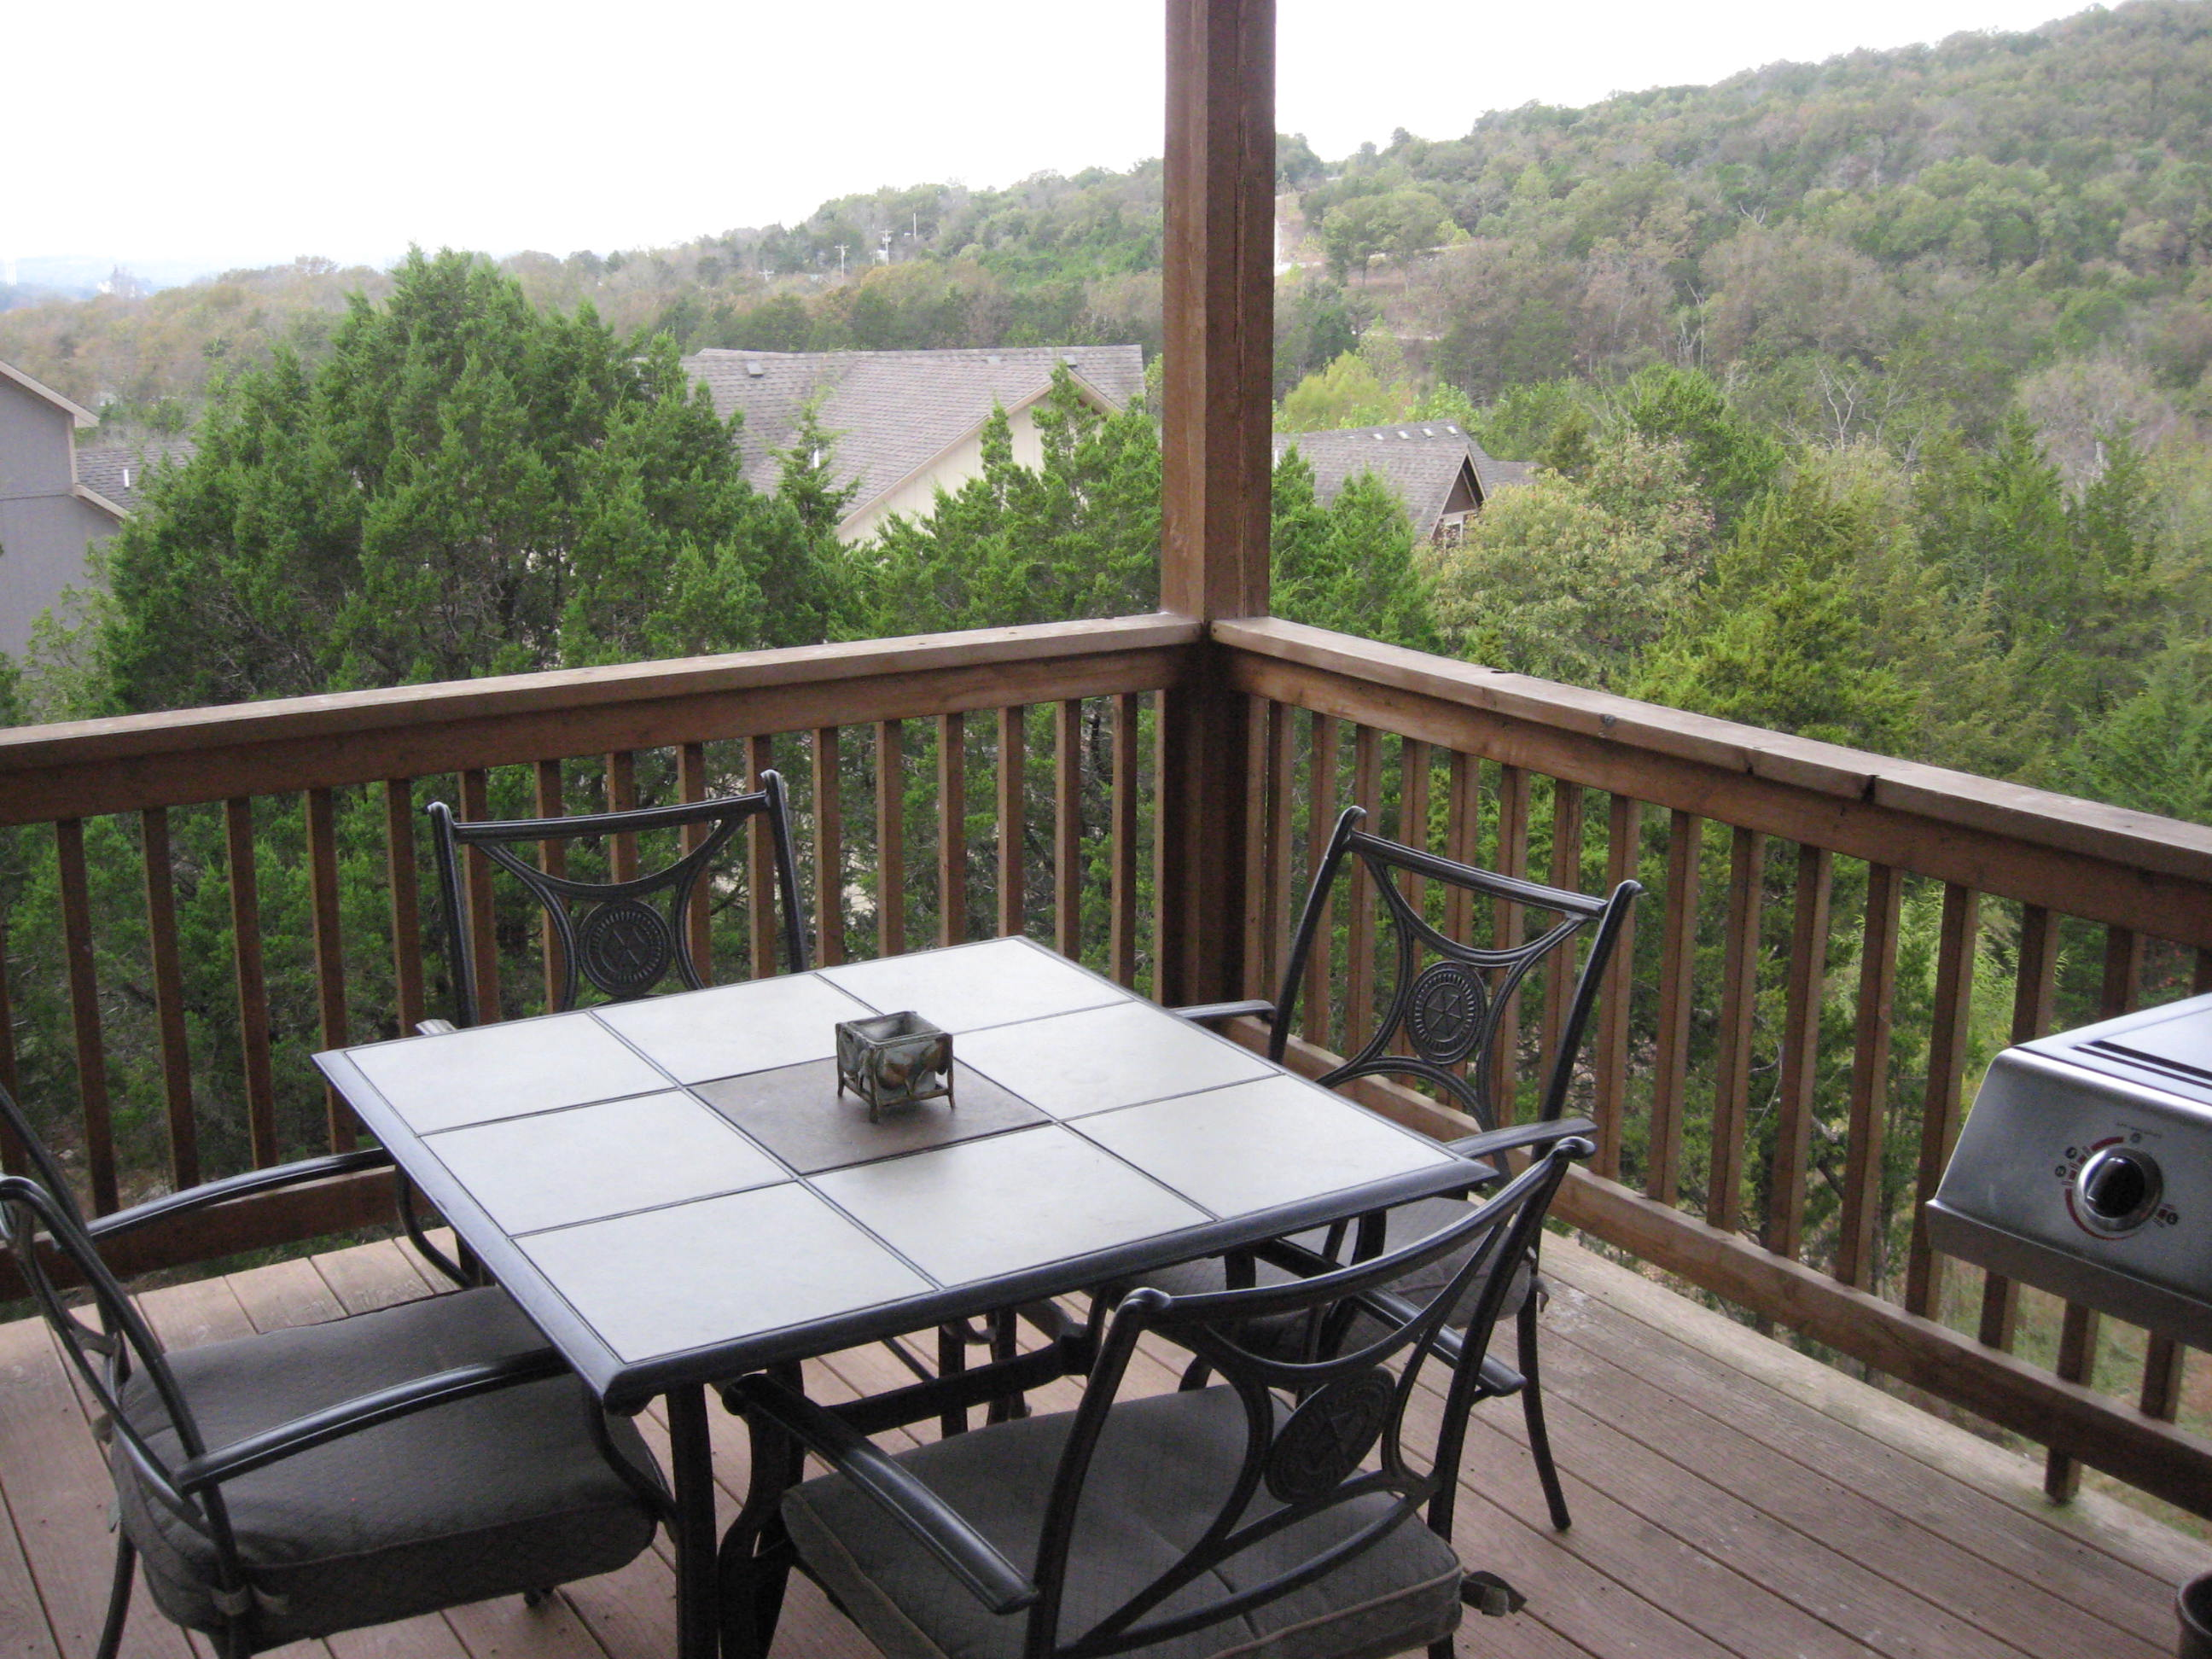 Branson Canyon Vacation Rentals Reunion Rendezvous Upstairs covered porch